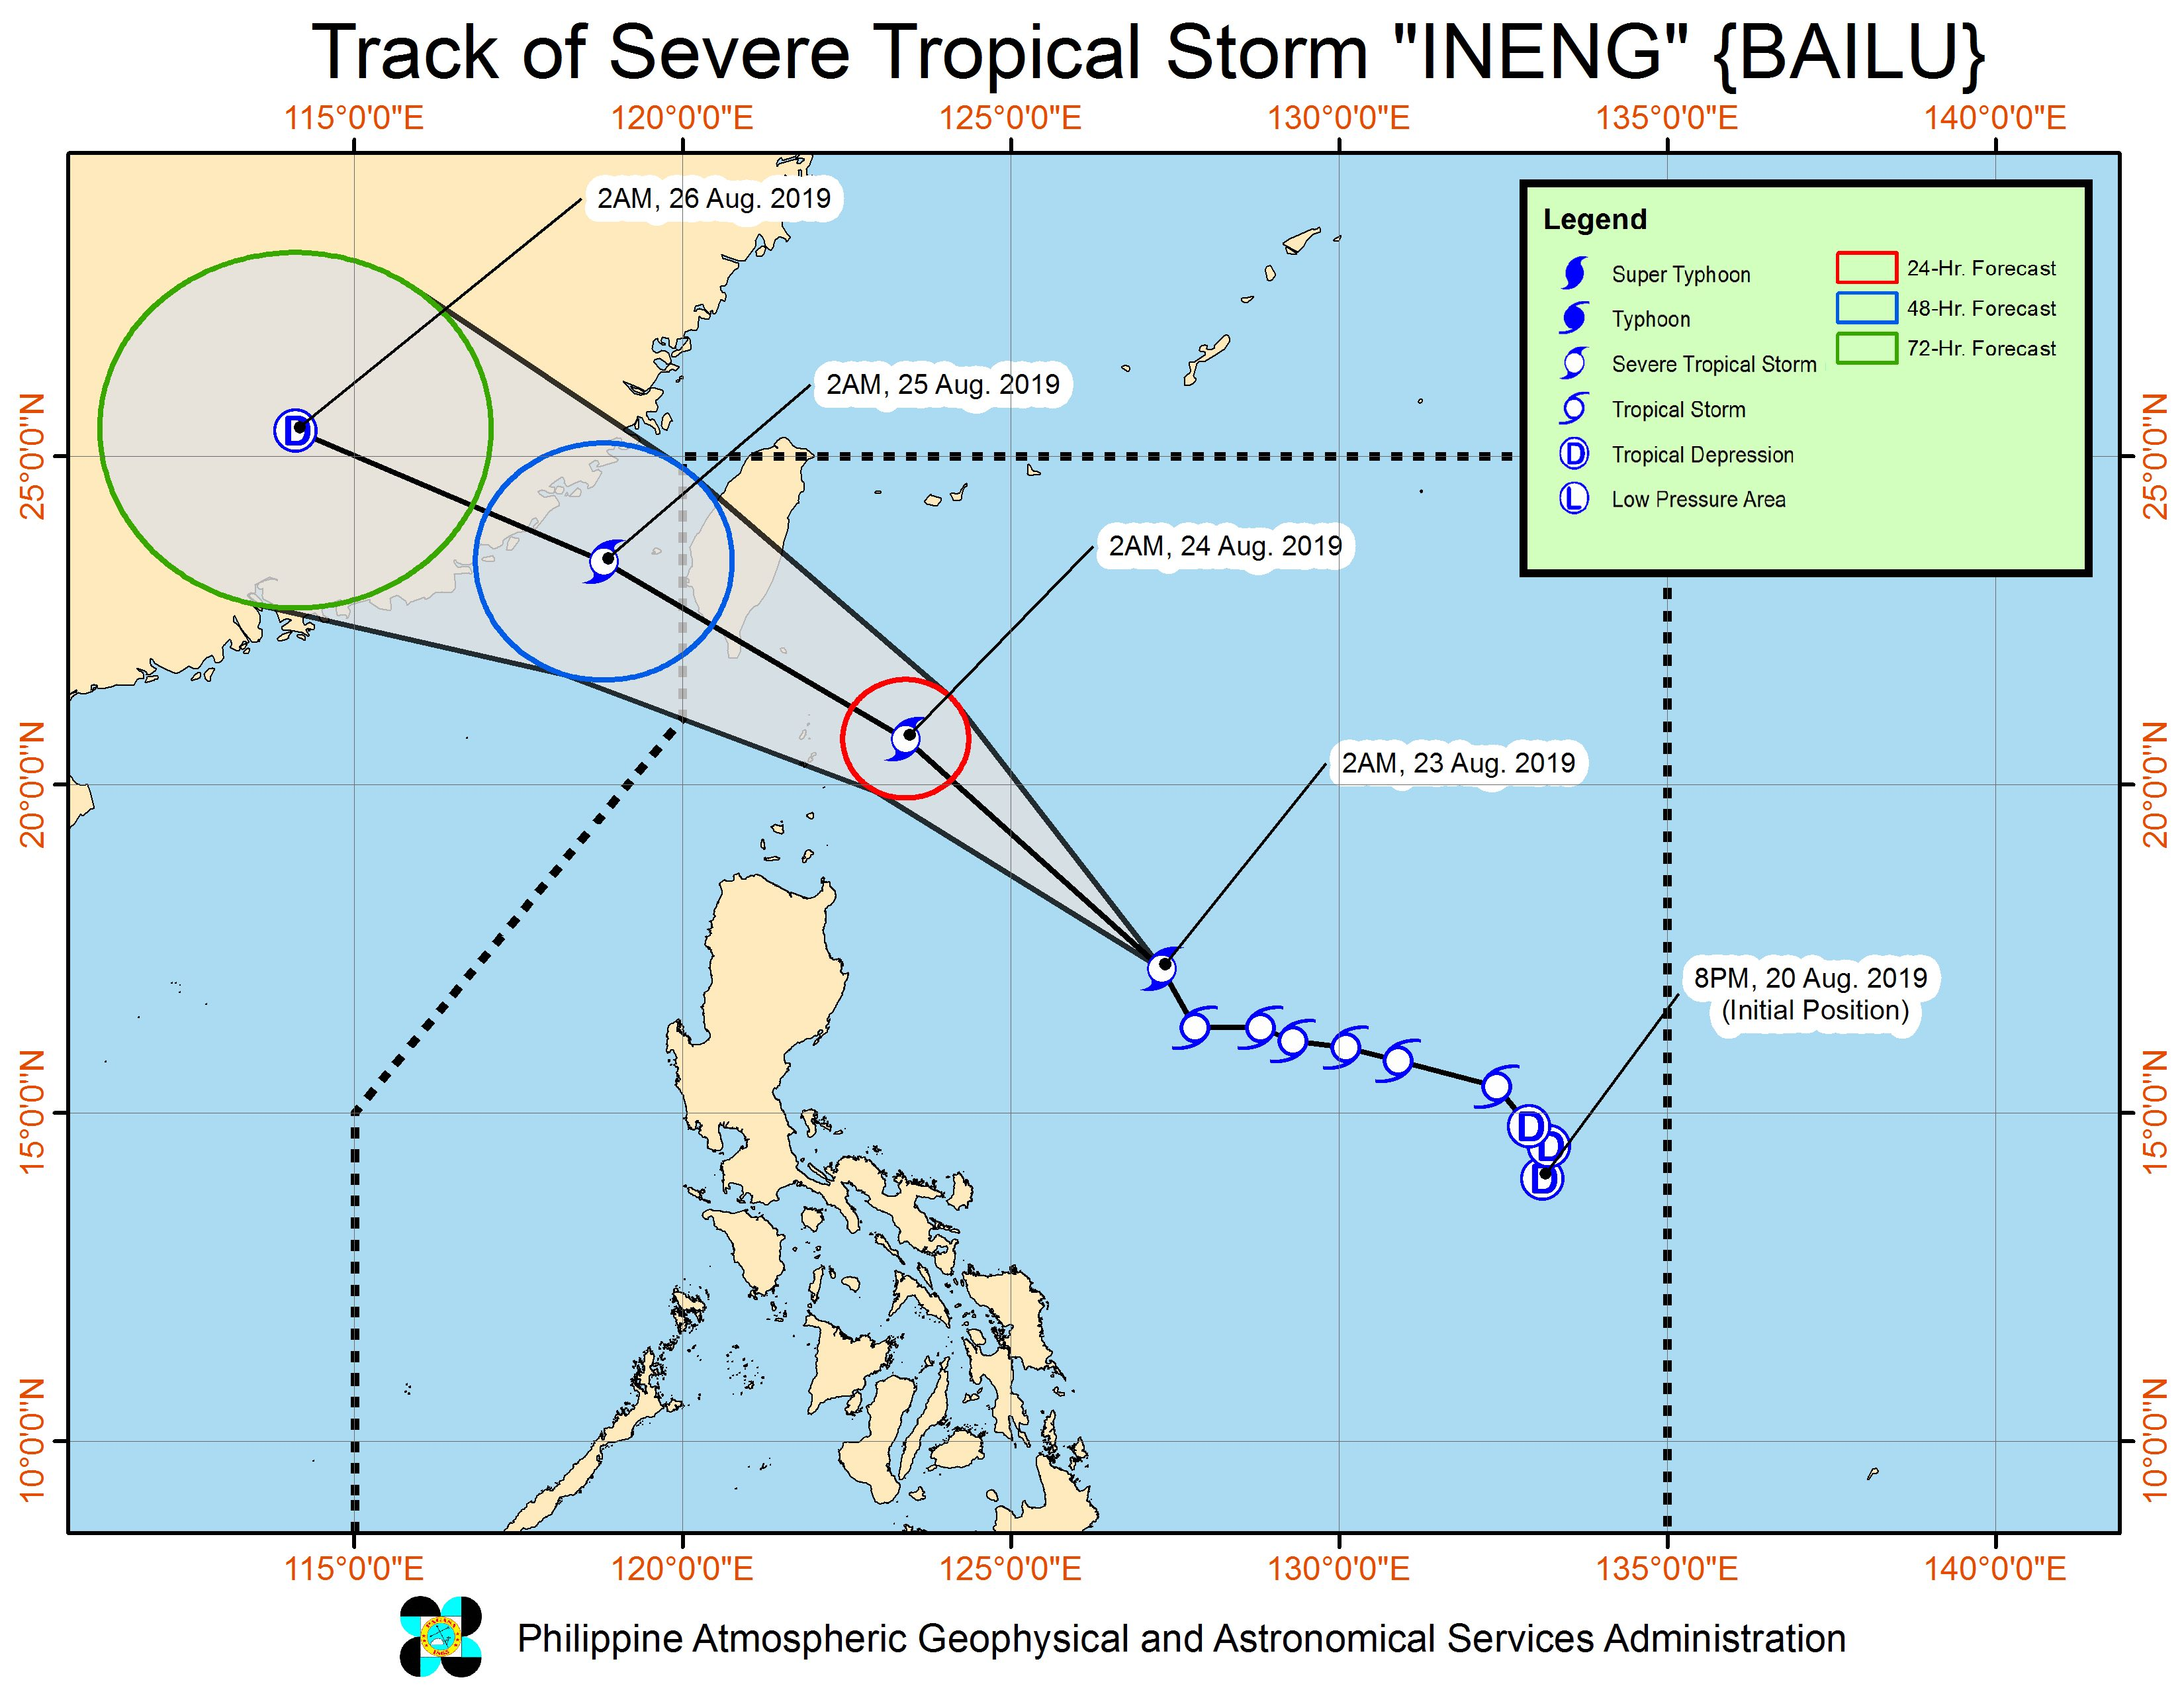 Forecast track of Severe Tropical Storm Ineng (Bailu) as of August 23, 2019, 5 am. Image from PAGASA